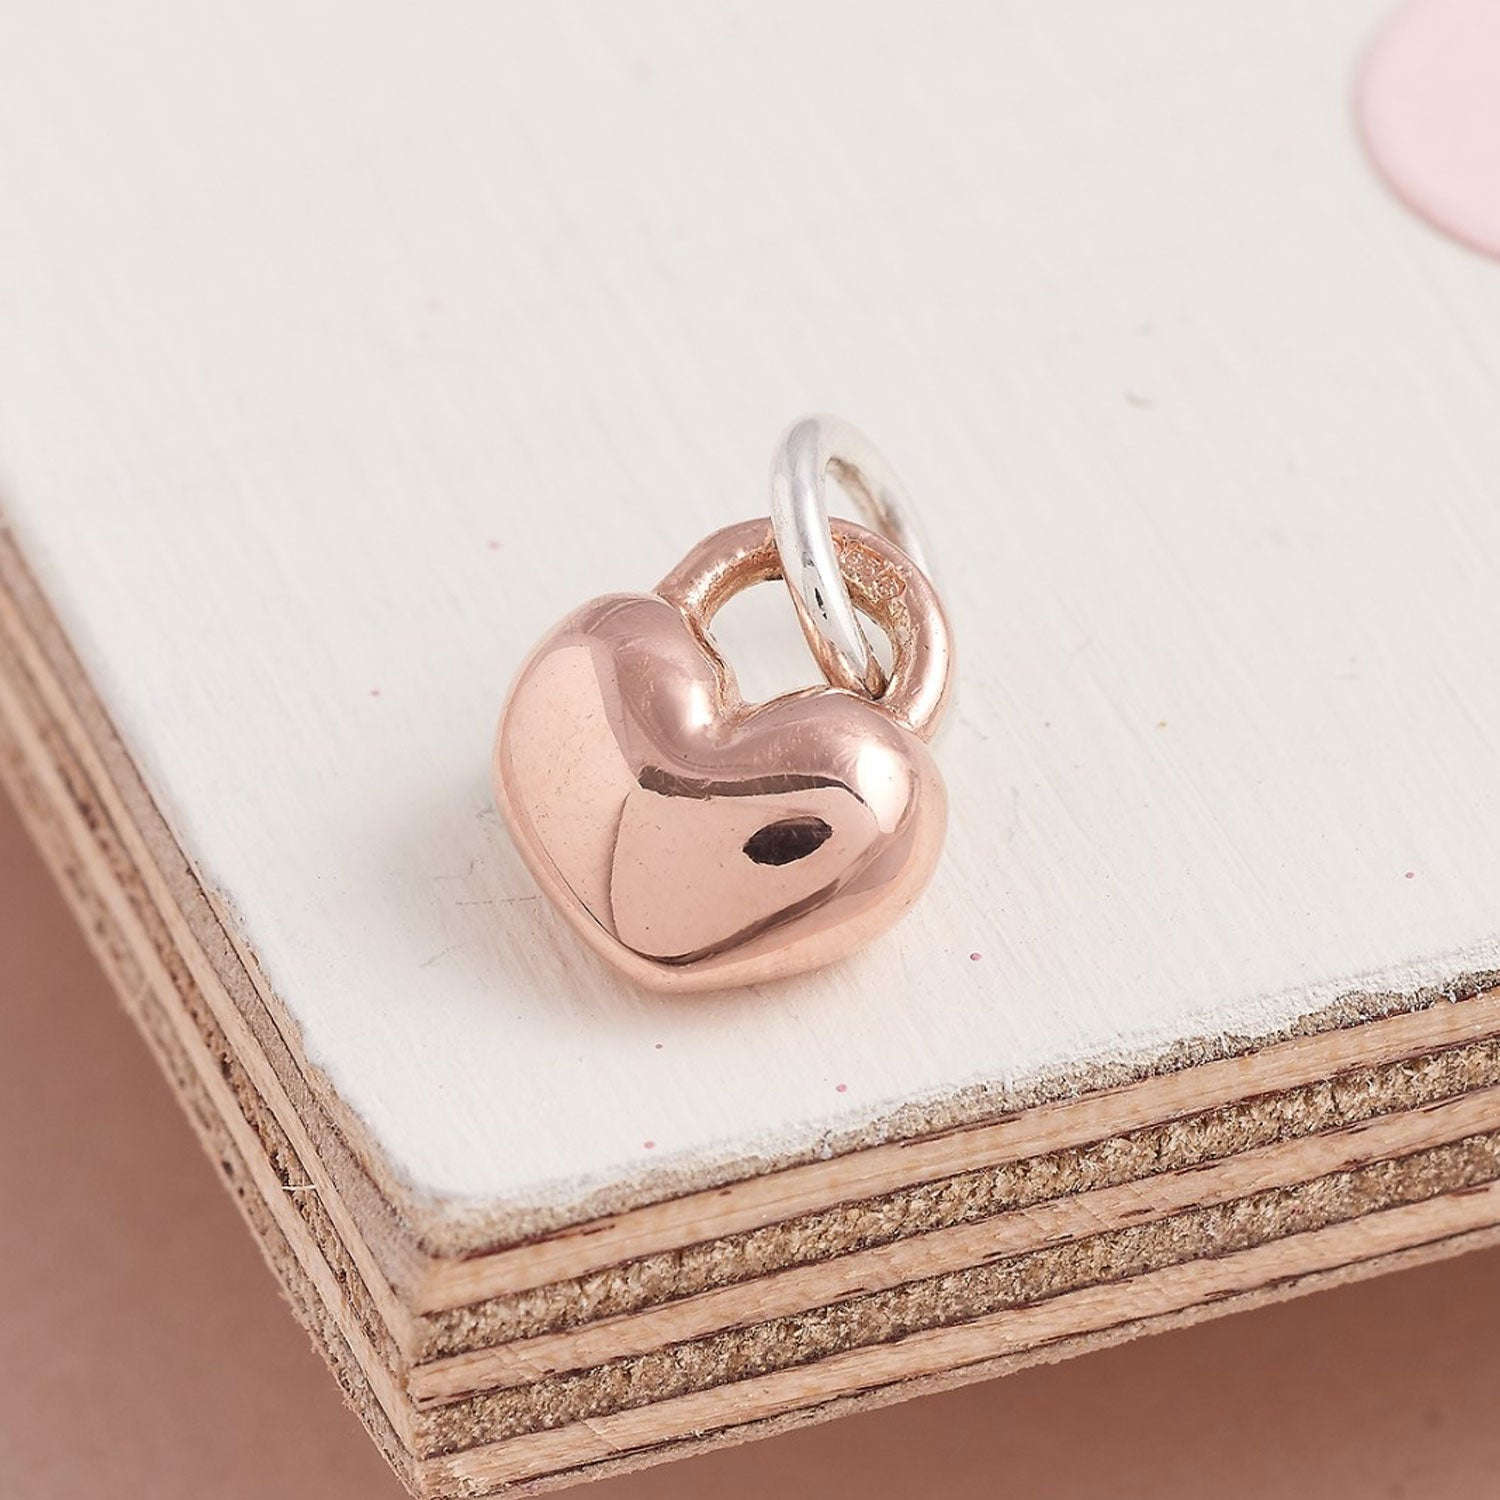 Solid rose gold chunky charm for bracelets Scarlett Jewellery